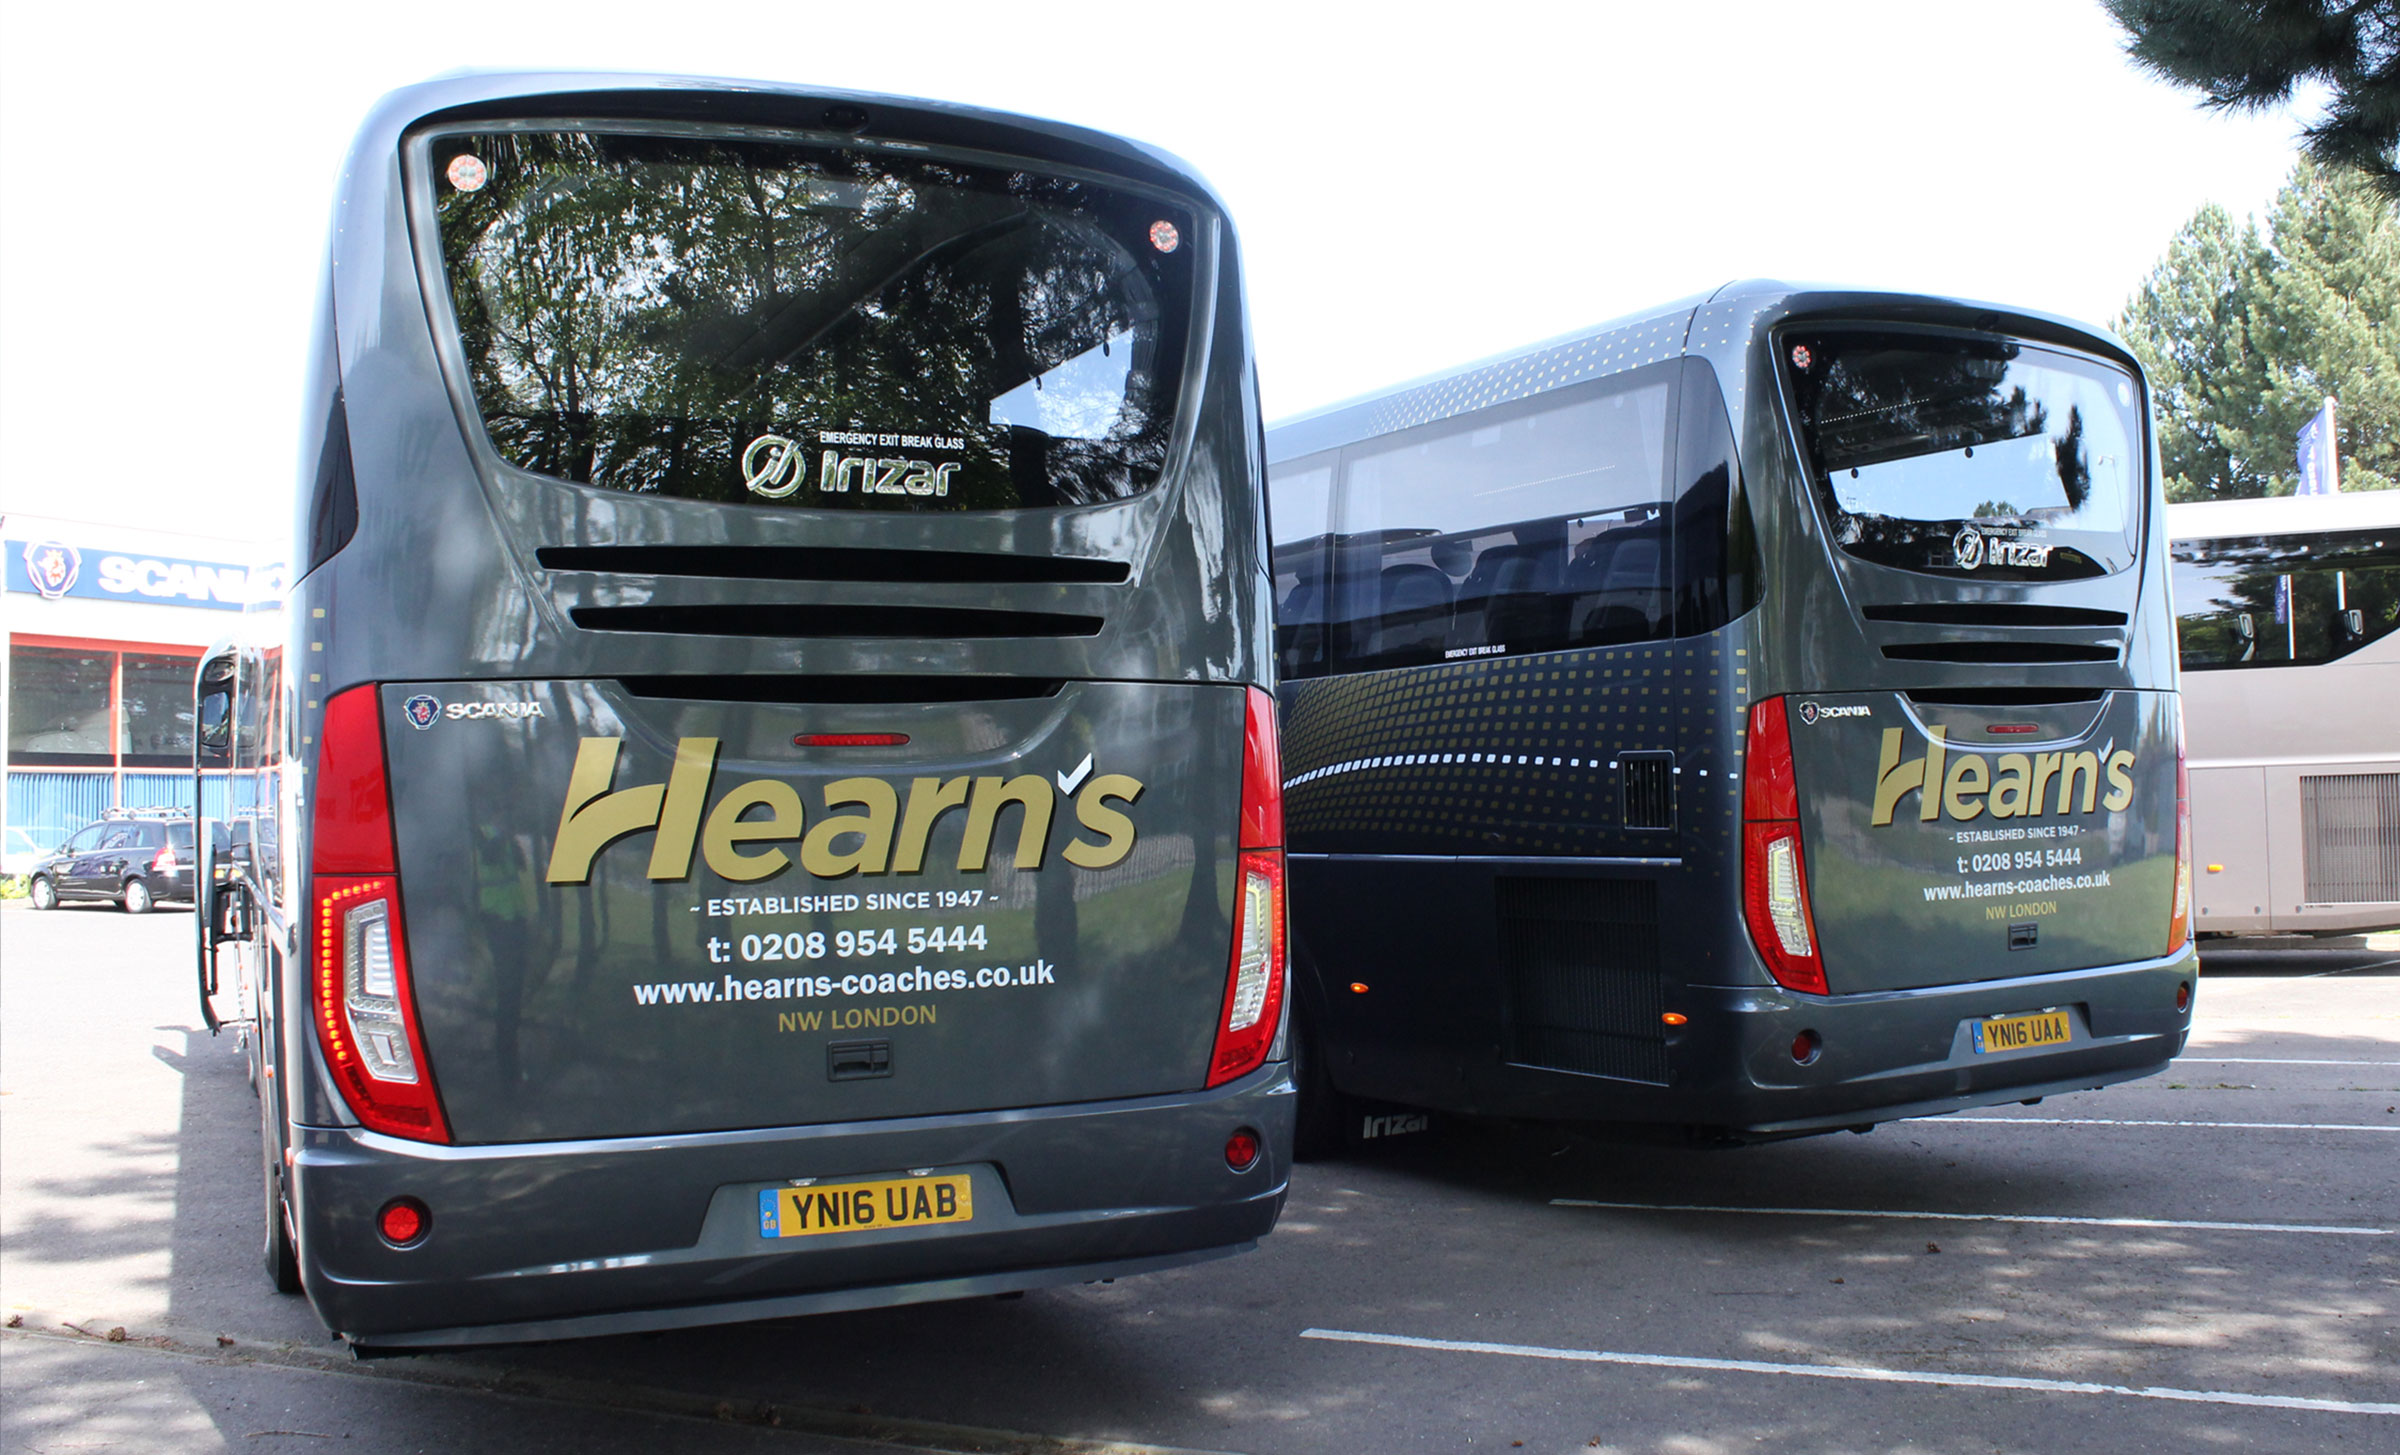 Hearns vehicle livery photography